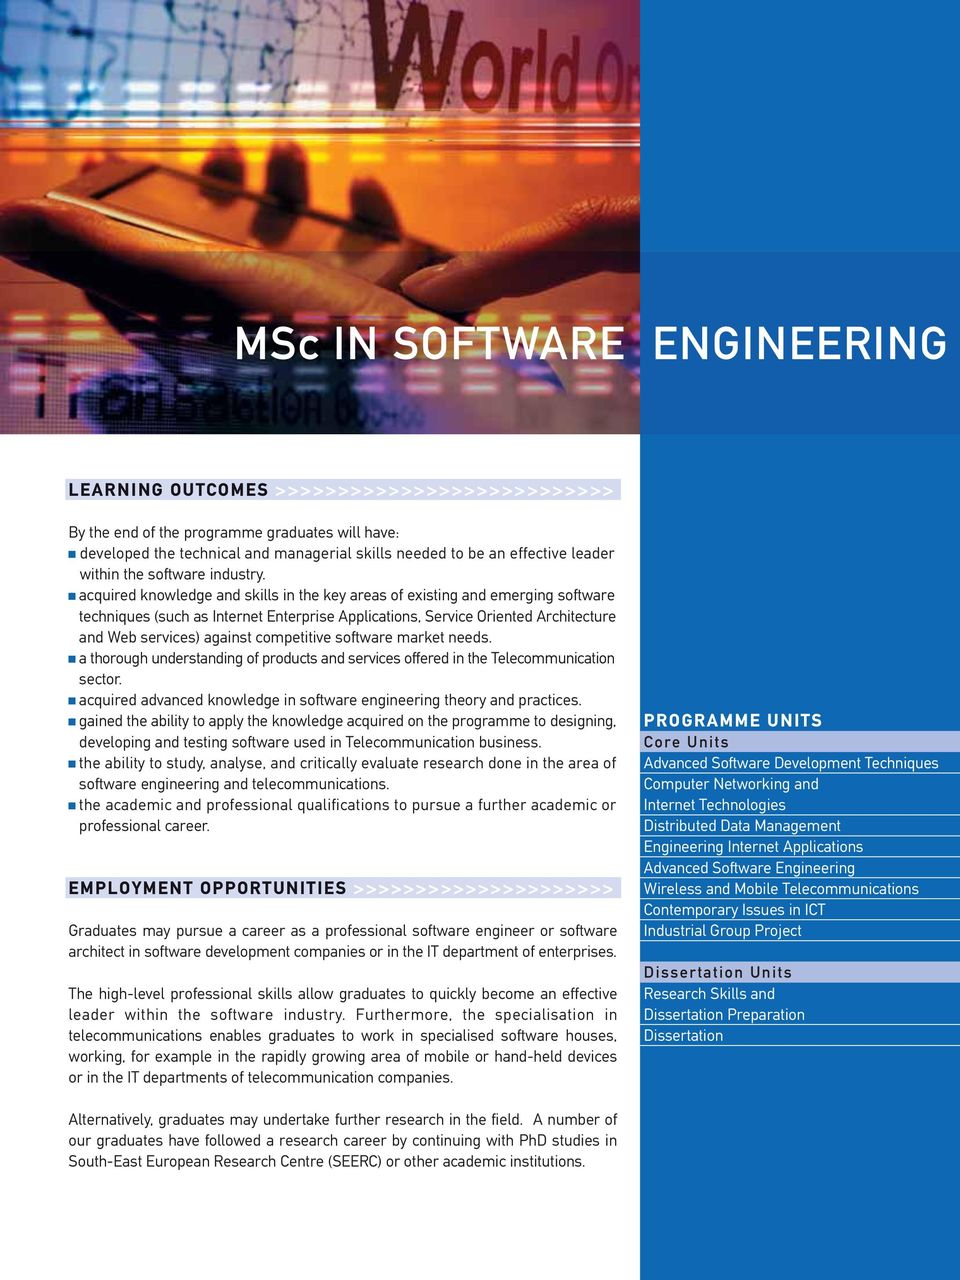 acquired knowledge and skills in the key areas of existing and emerging software techniques (such as Internet Enterprise Applications, Service Oriented Architecture and Web services) against